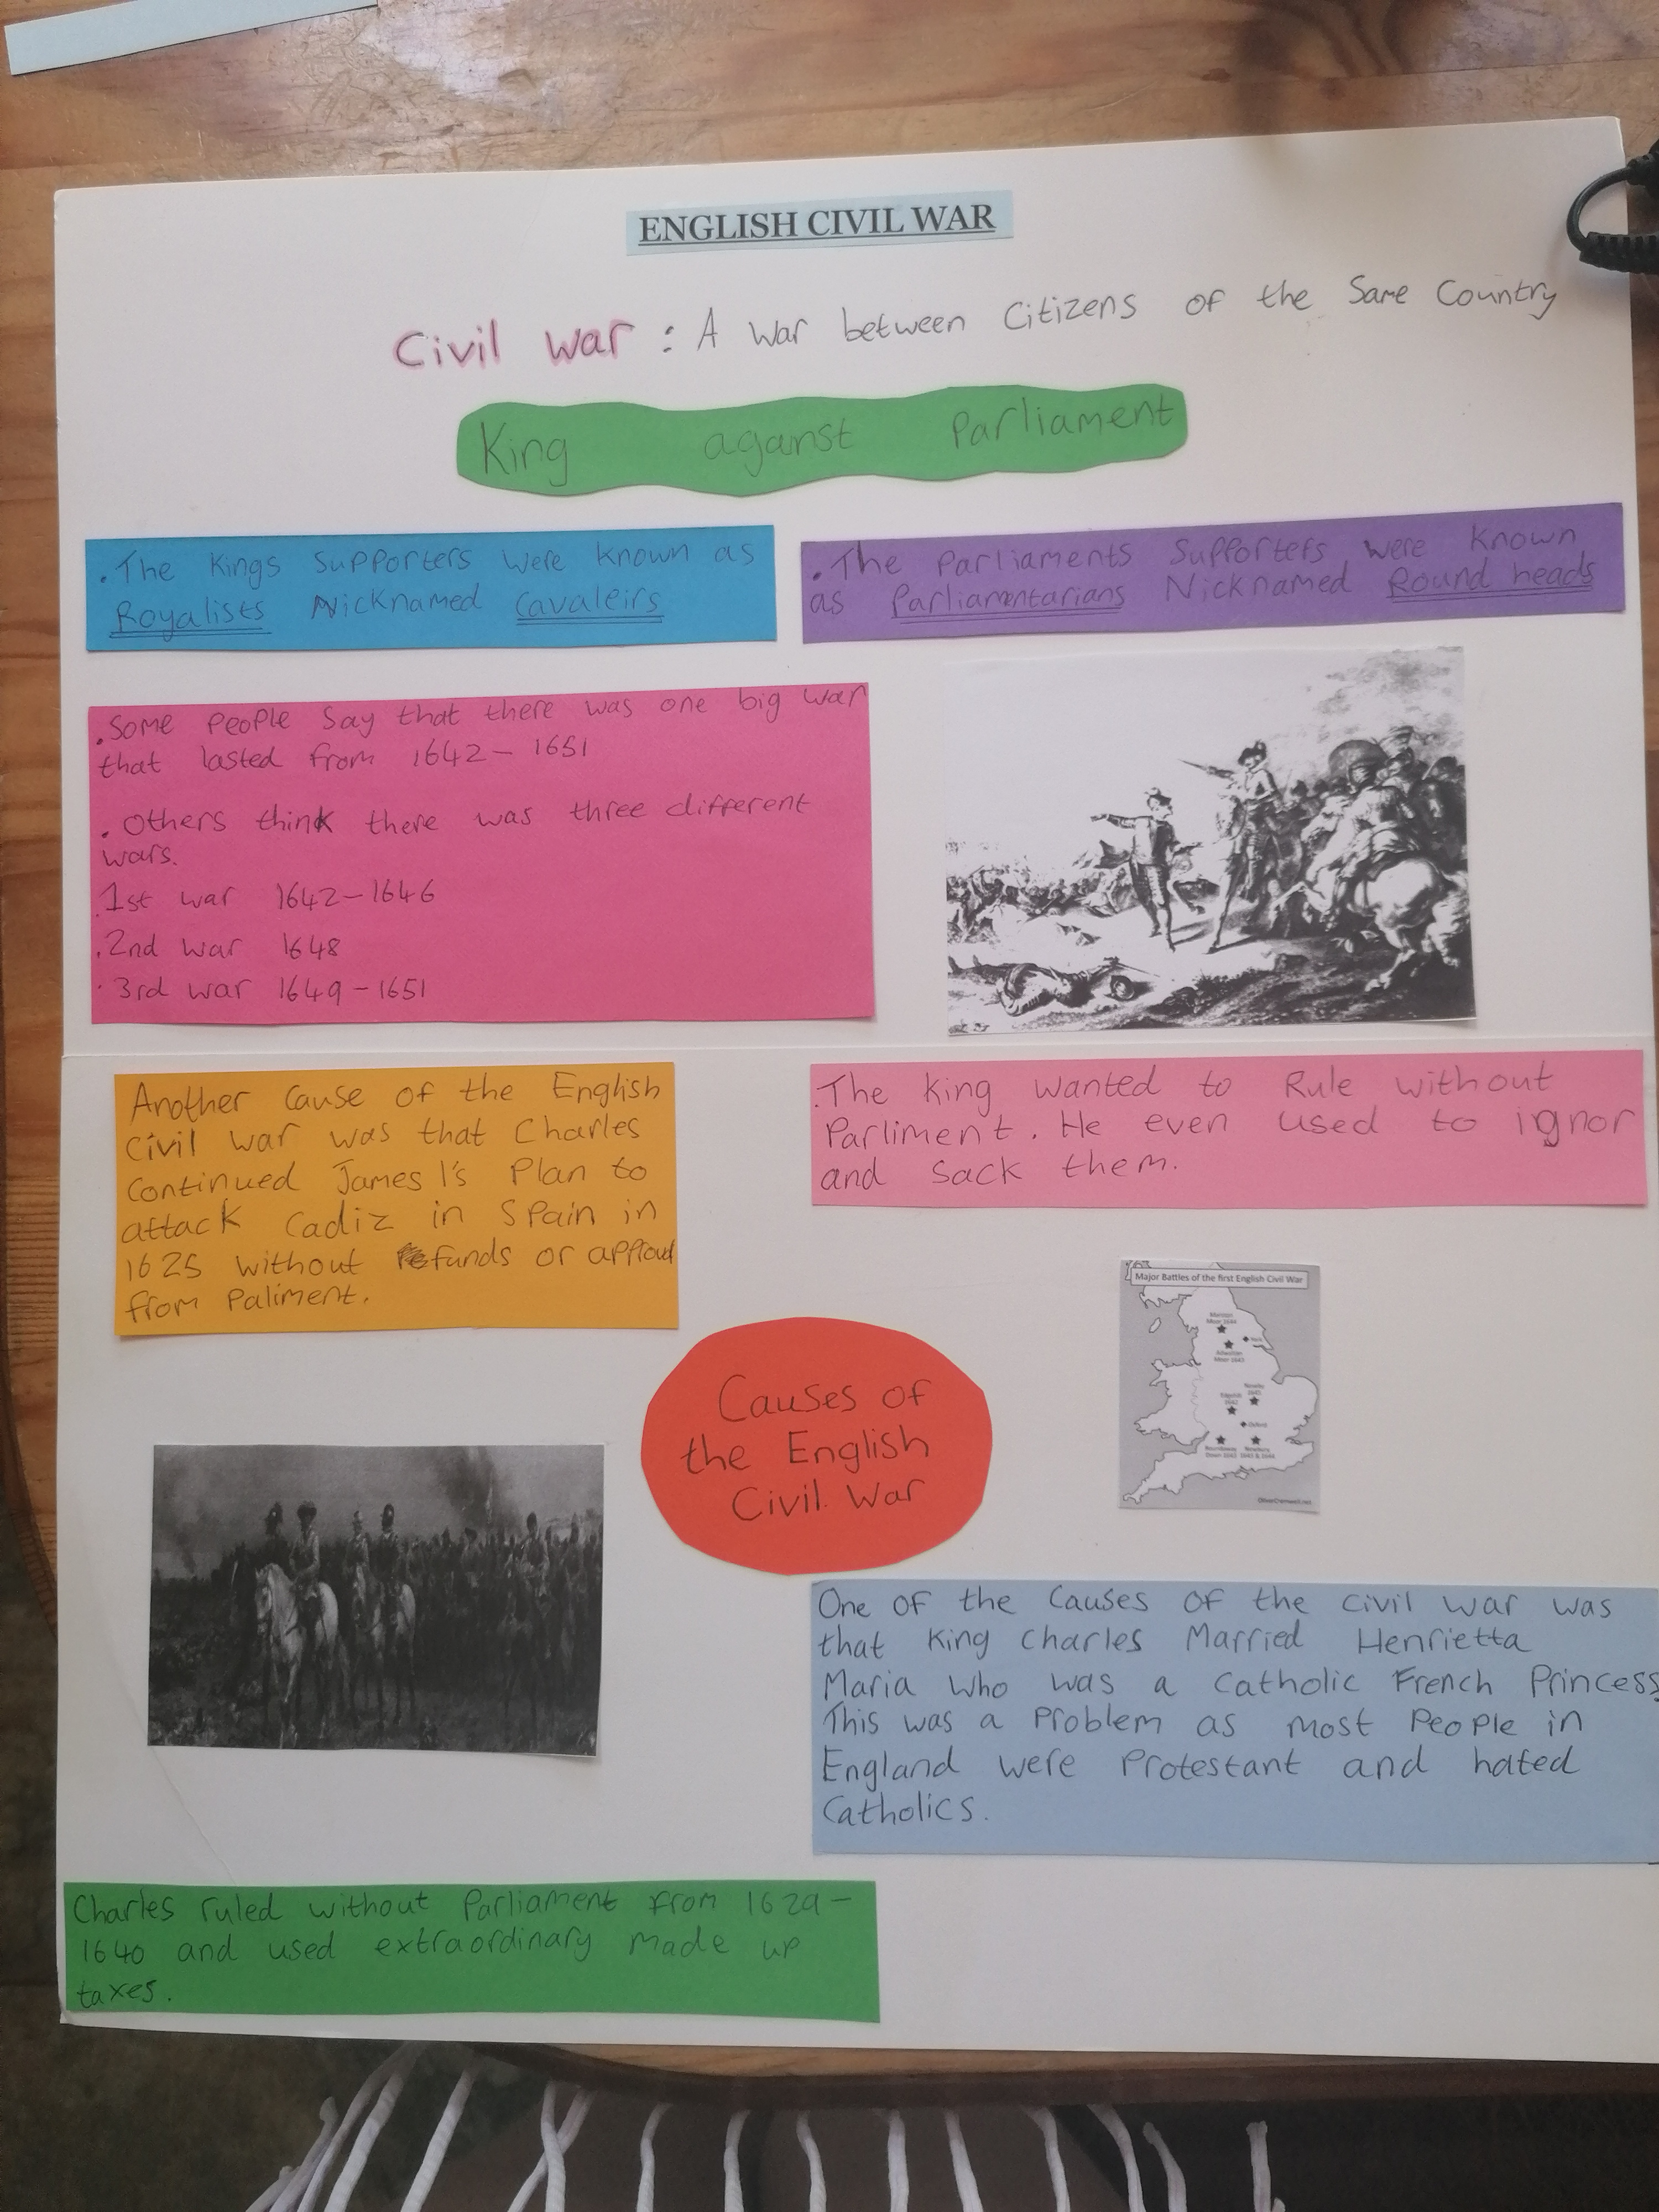 22/05/20 - History Assignment: English Civil War